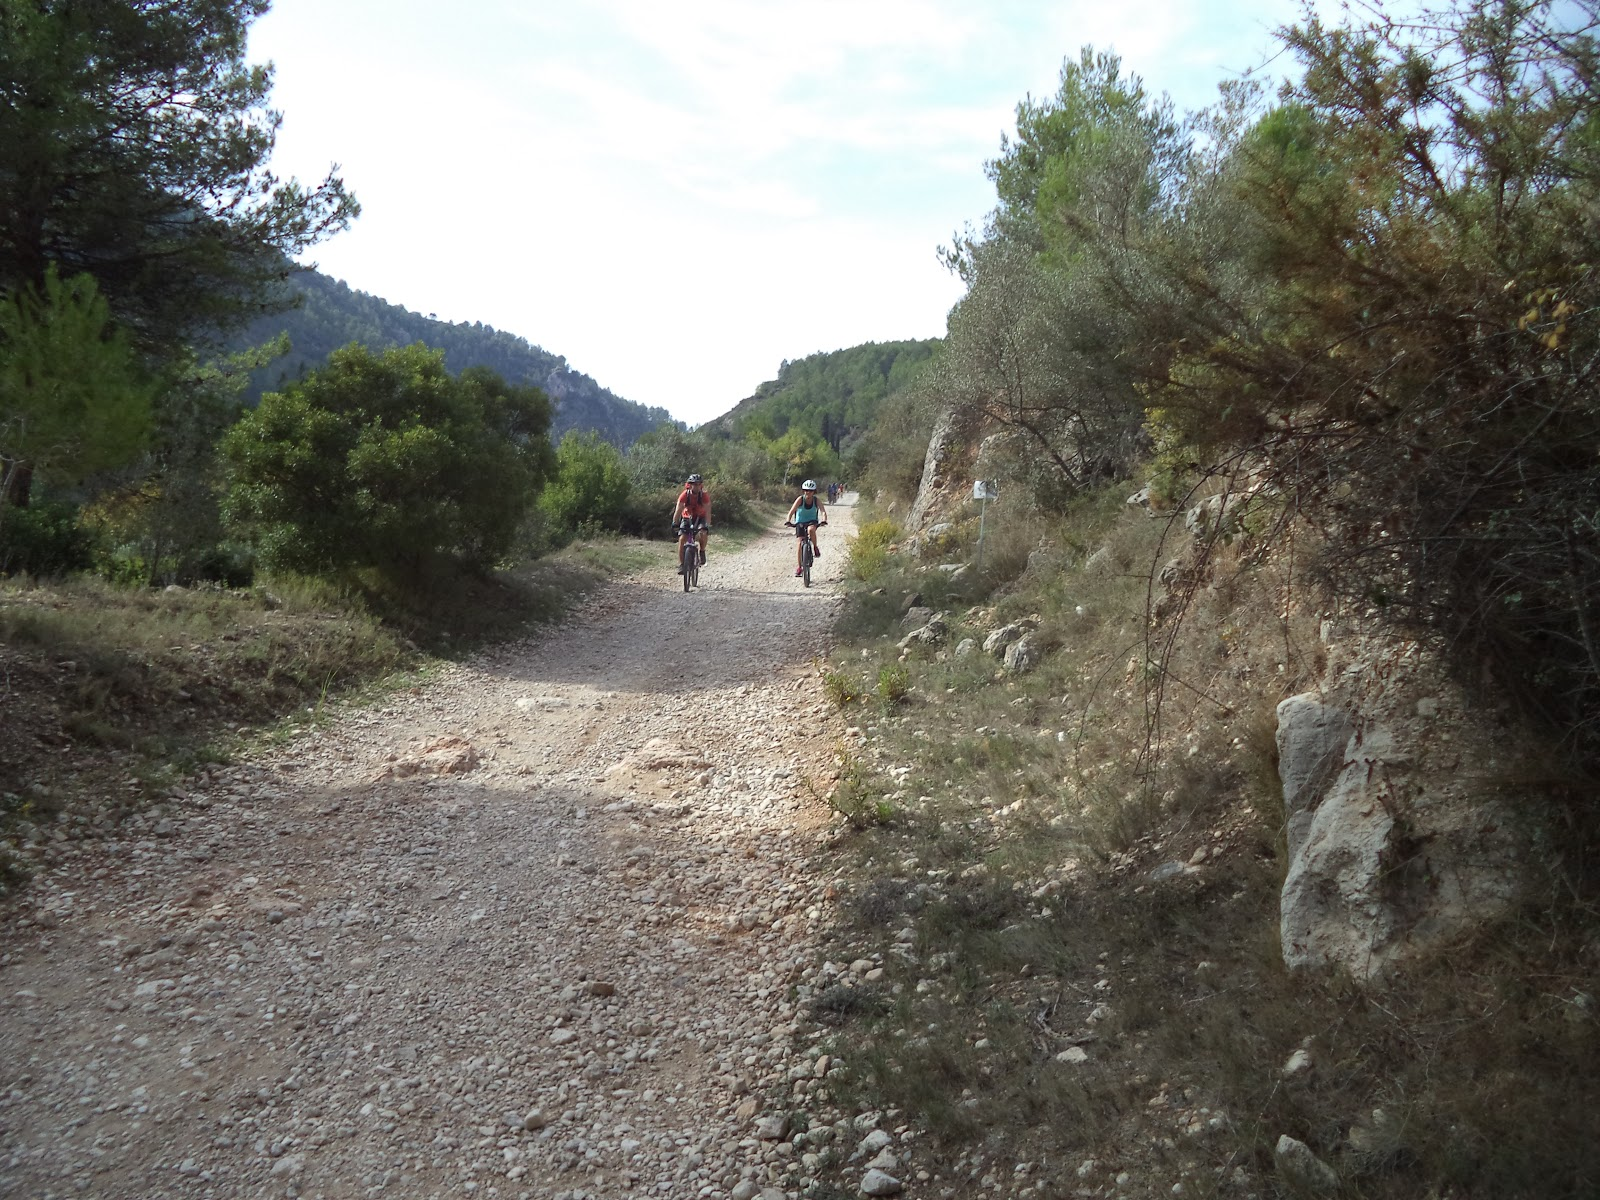 Cyclists on Serpis Greenway in Spain